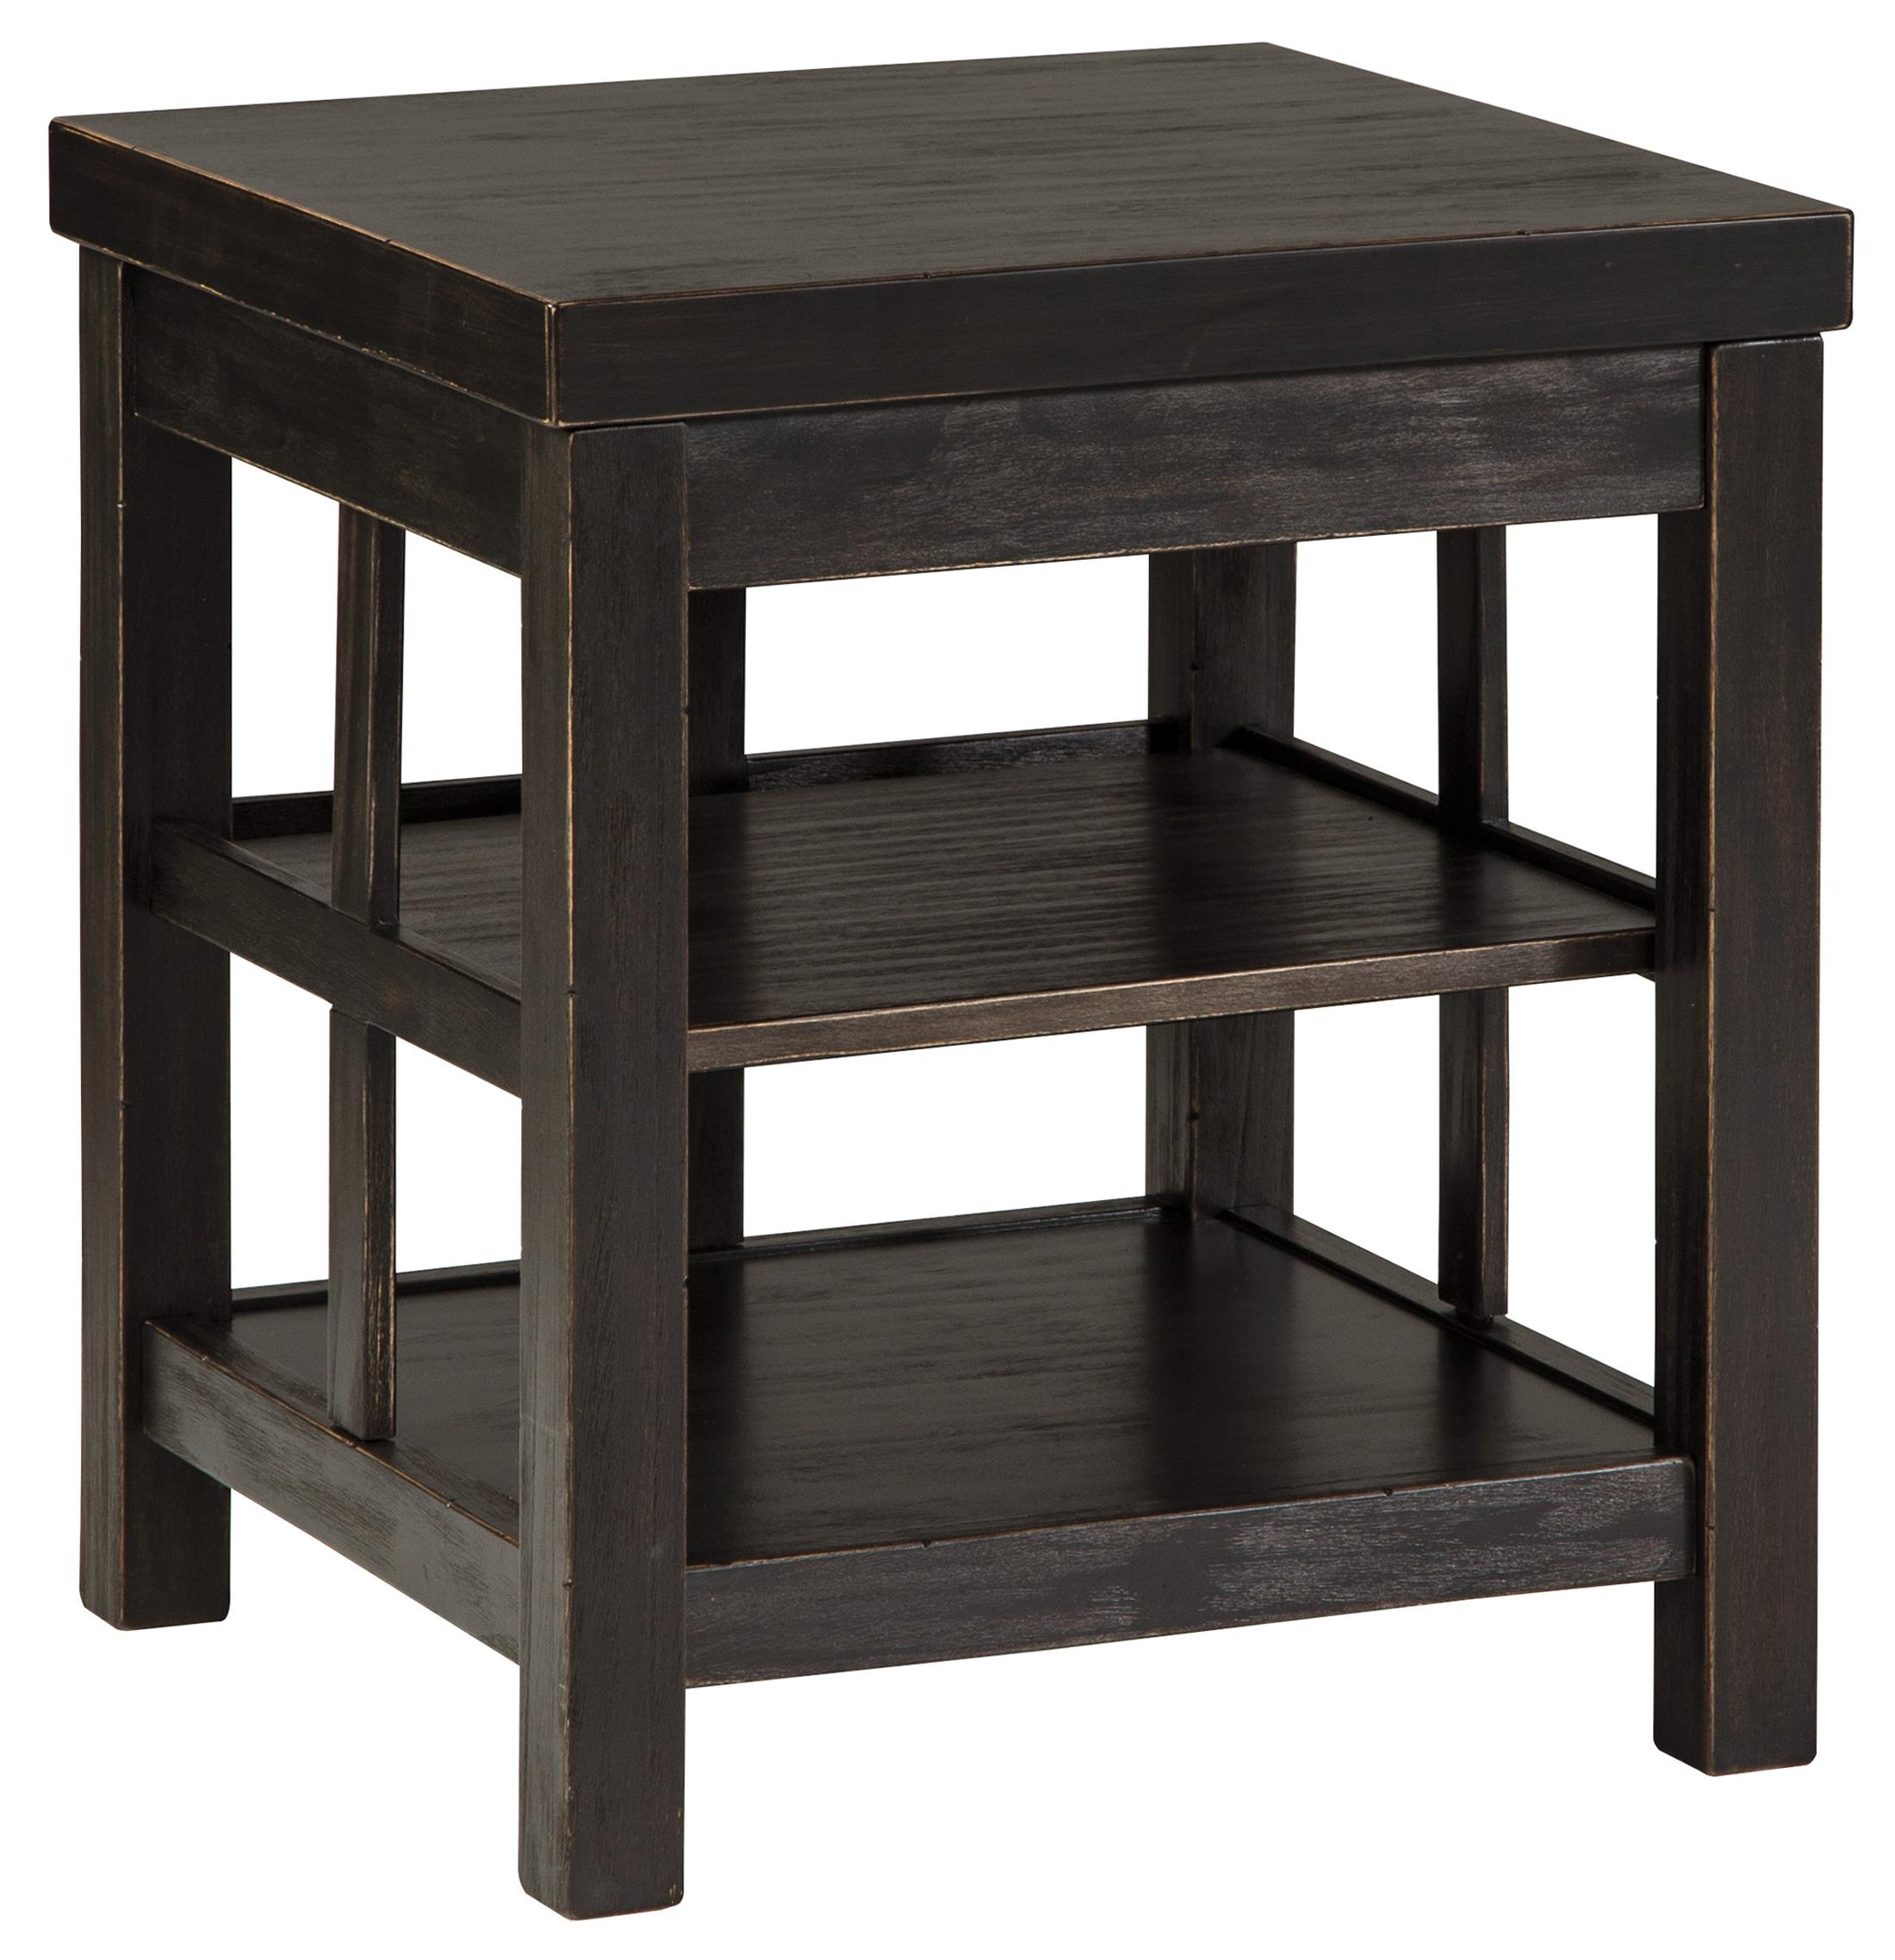 signature design ashley gavelston rustic distressed black products color white accent table square end with shelves large silver lamp expandable trestle rubber carpet edging trim